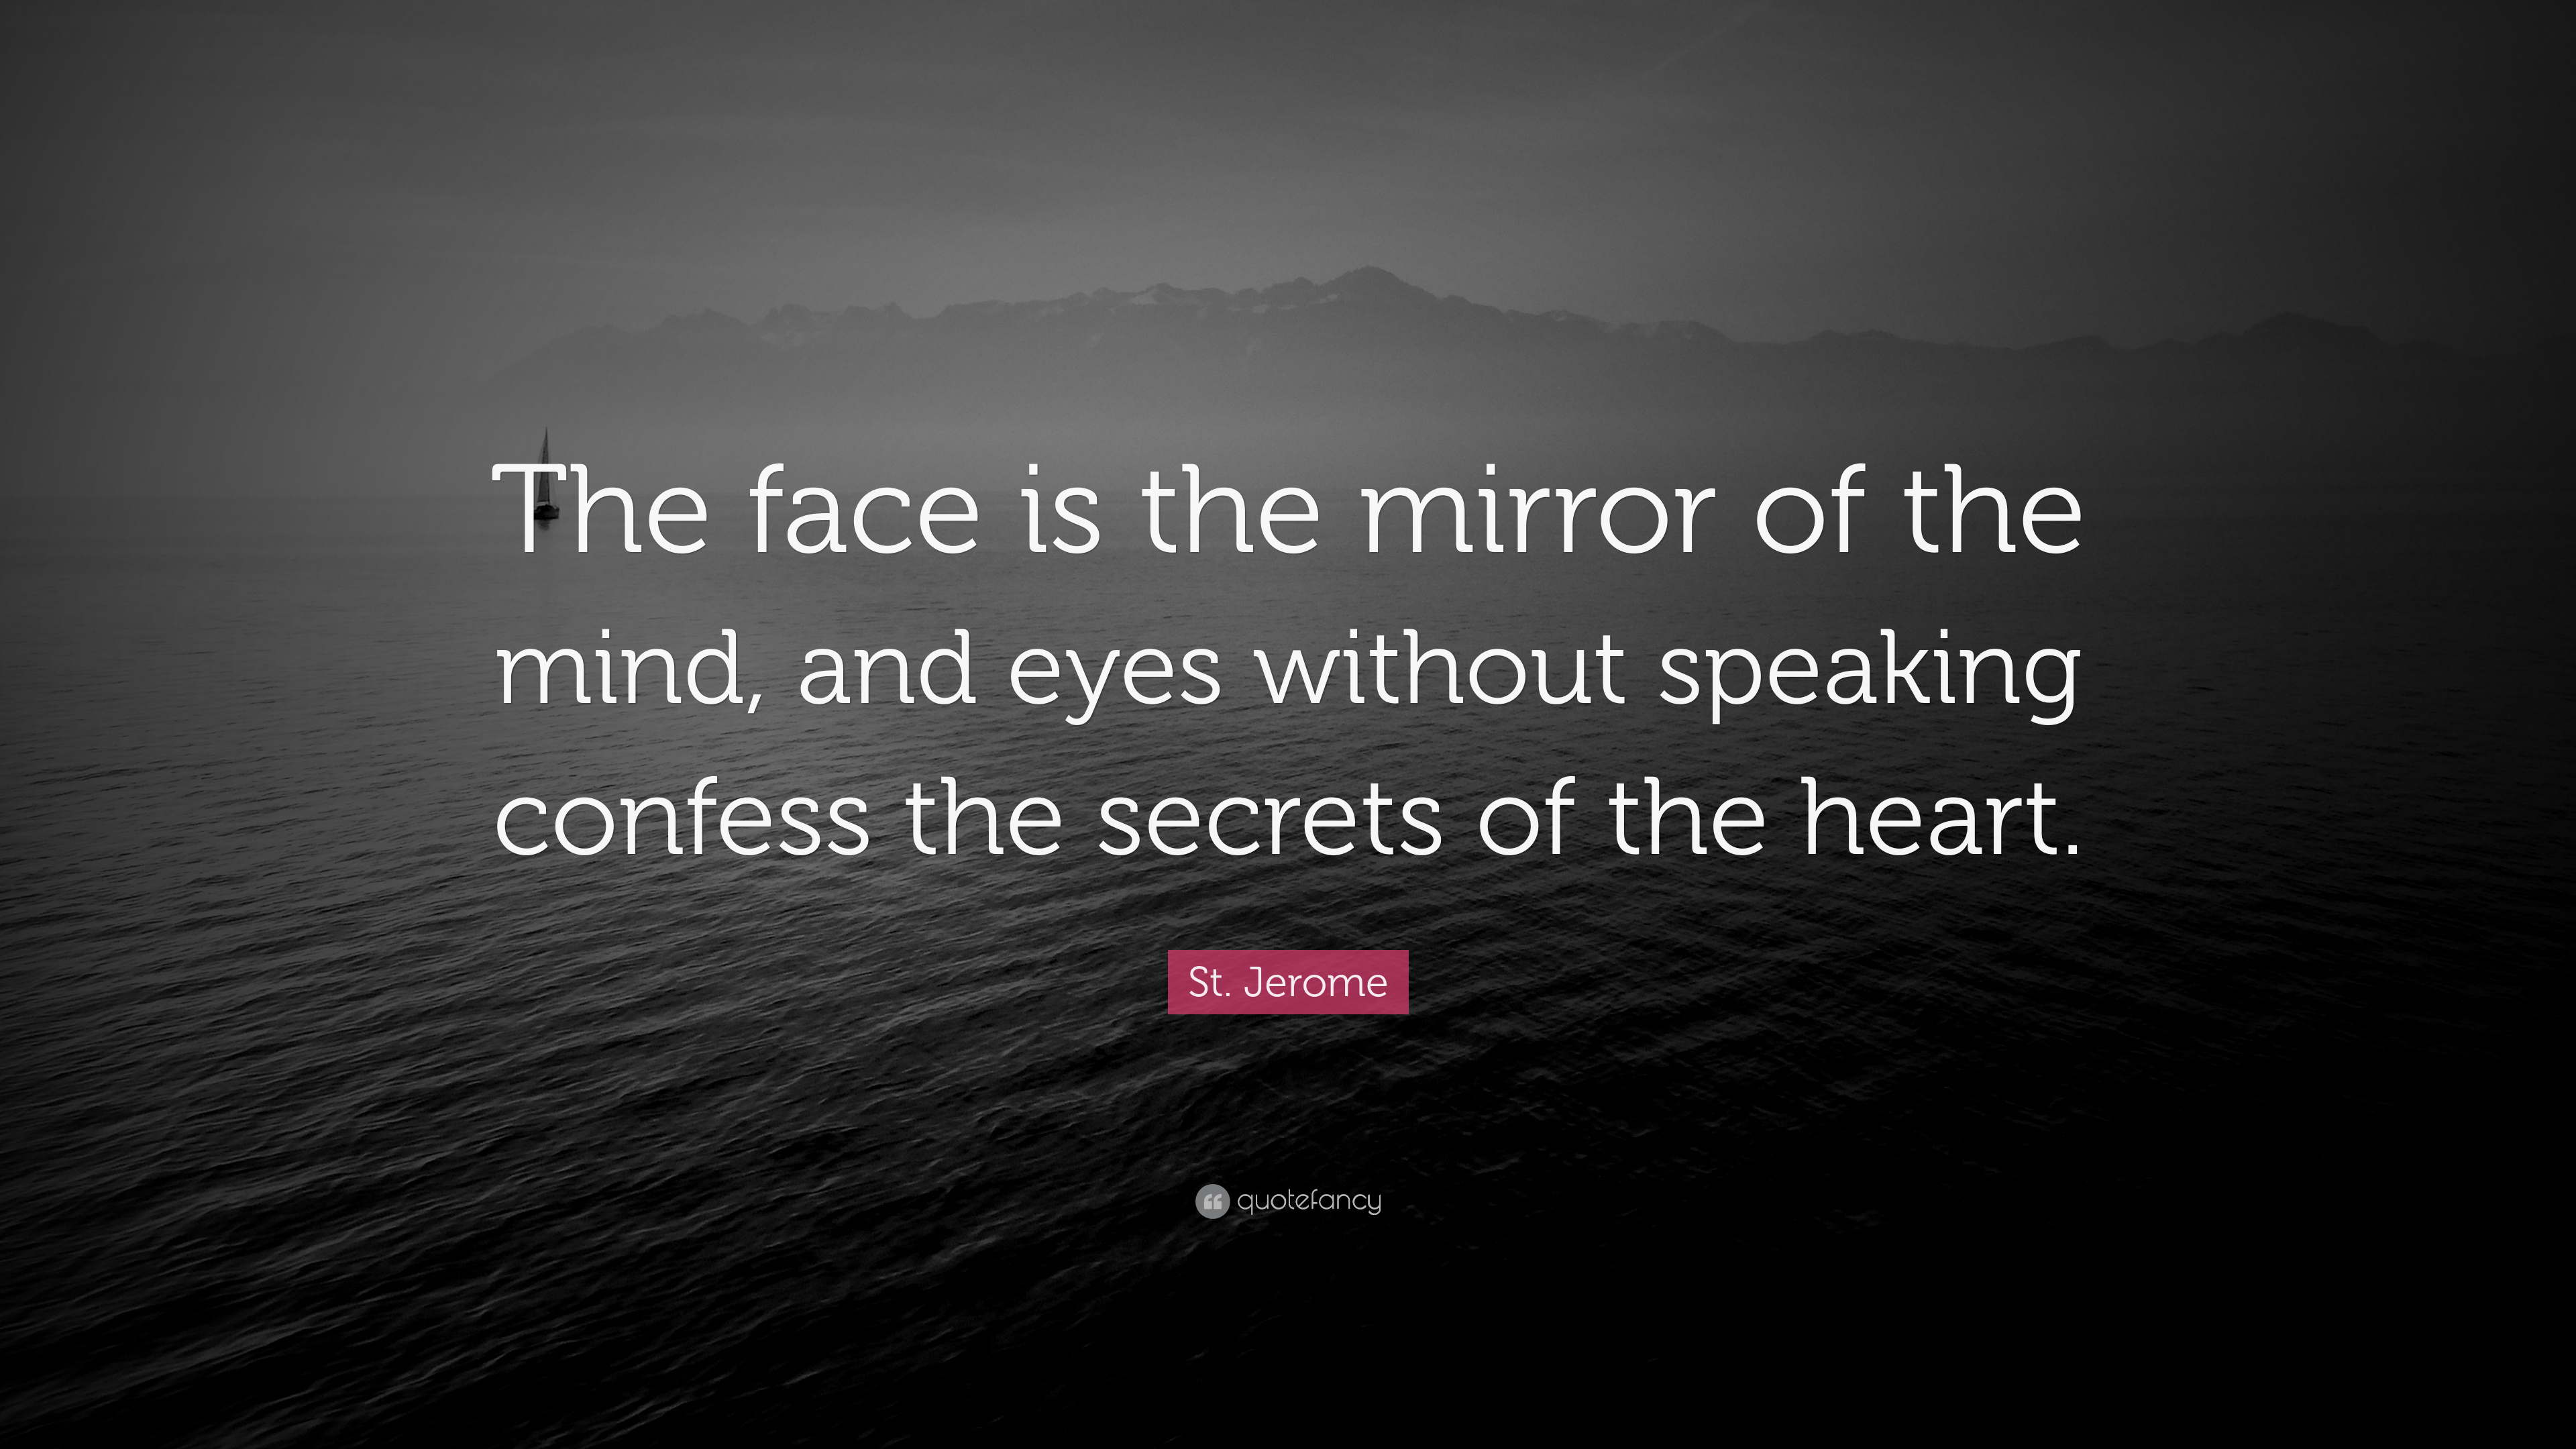 the face is the mirror of the mind